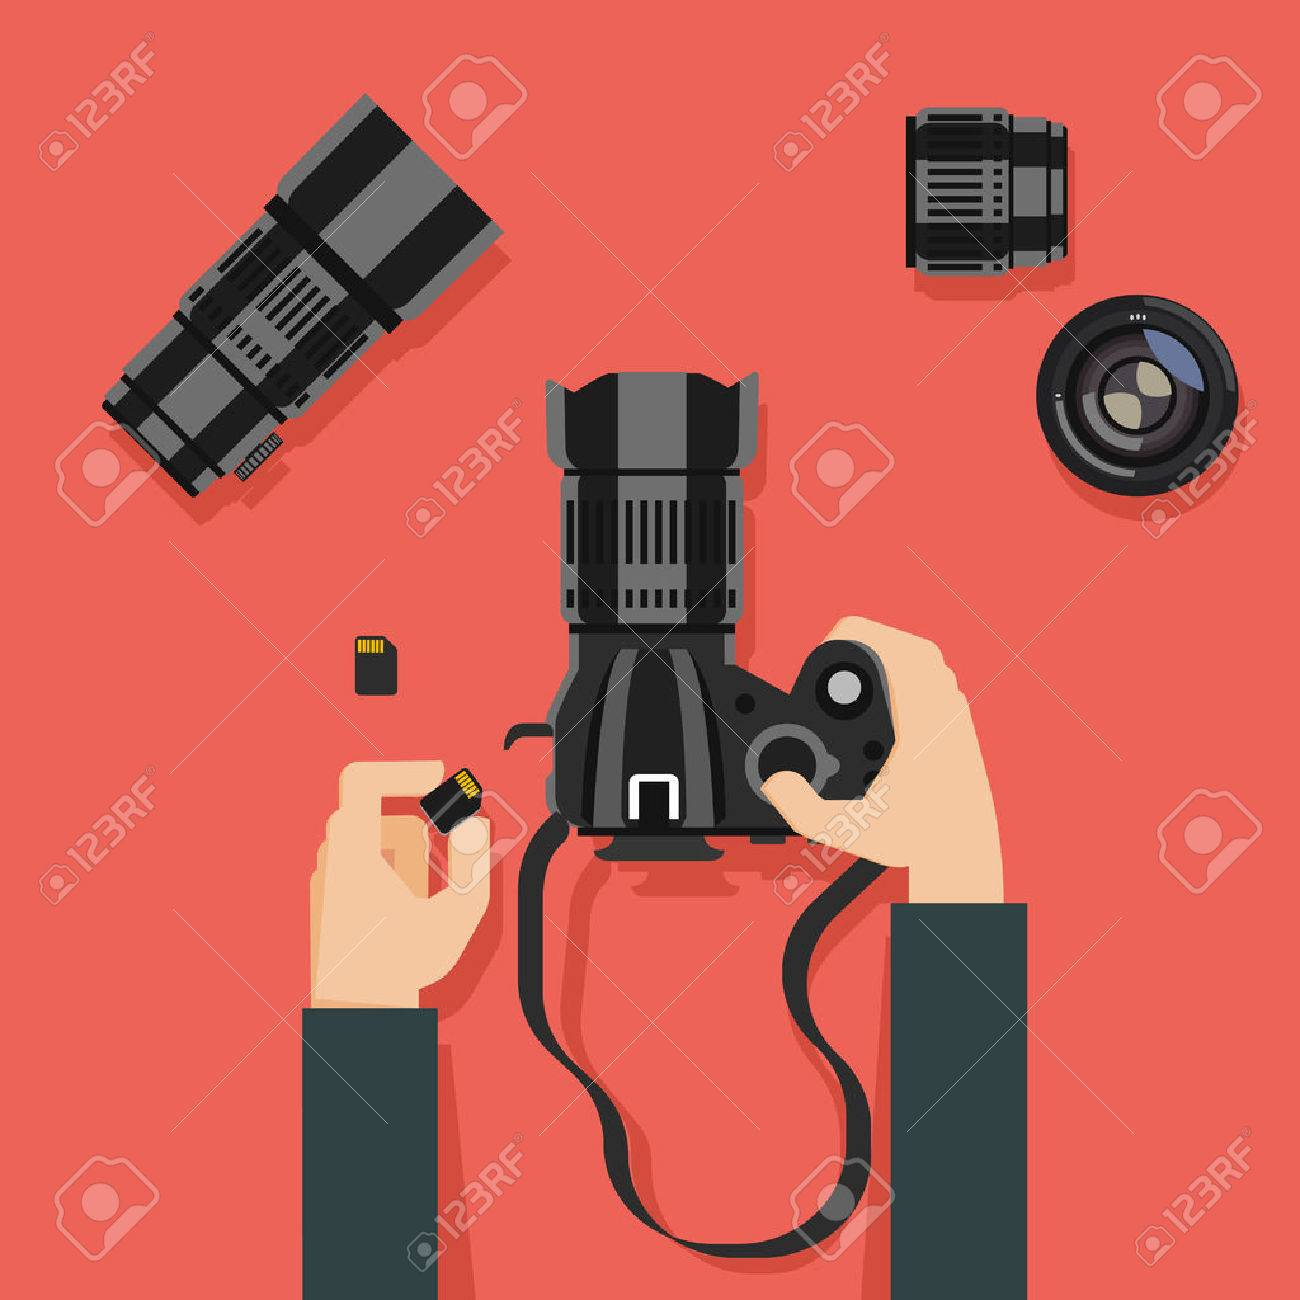 Flat design vector illustration of hands with camera and photography equipment - 47426220